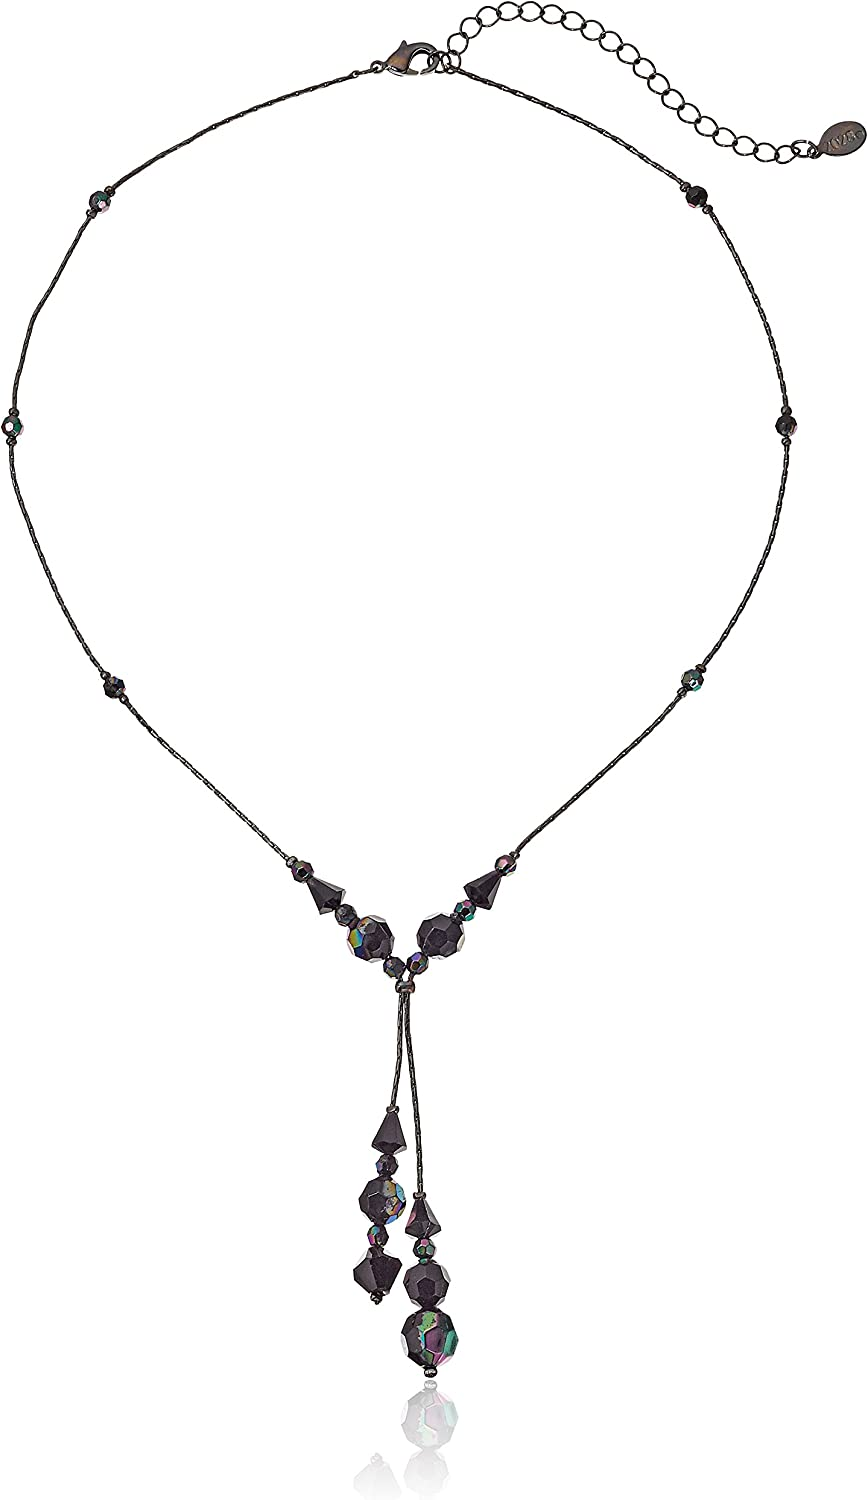 1928 Jewelry AB Beaded Adjustable Y-Shaped Necklace